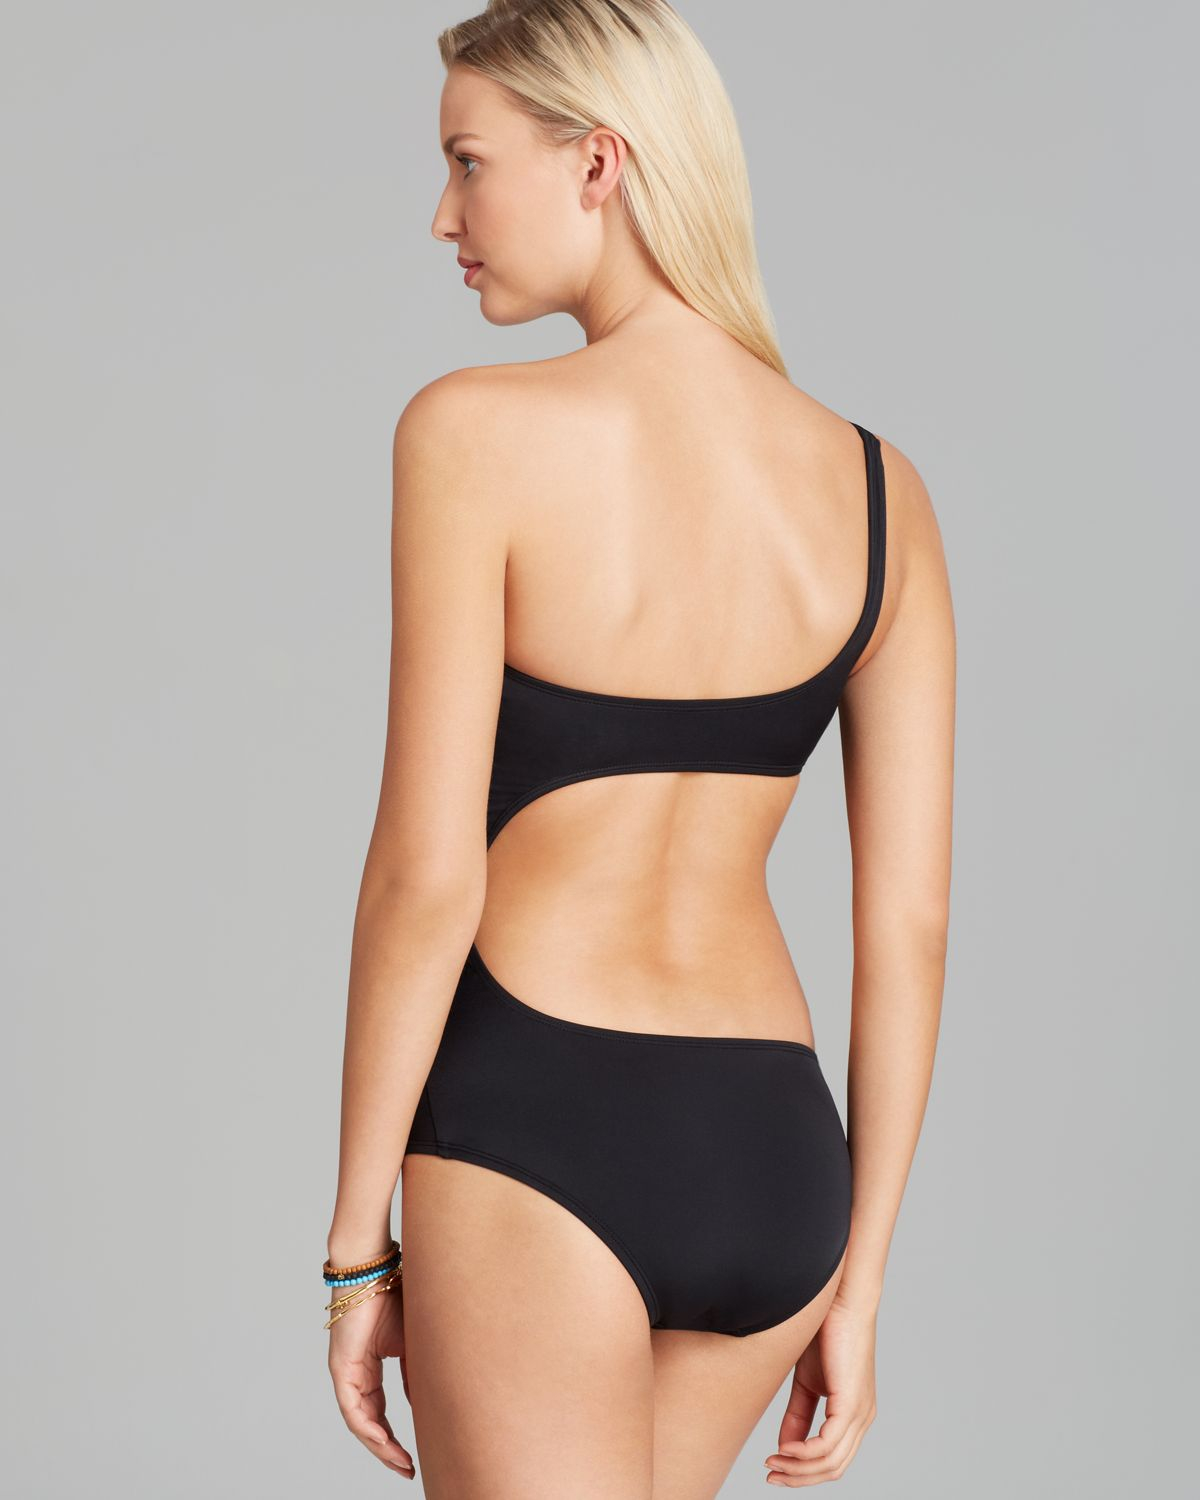 fad871525a1 DKNY Solid One Shoulder Asymmetrical Cut Out One Piece Swimsuit in ...